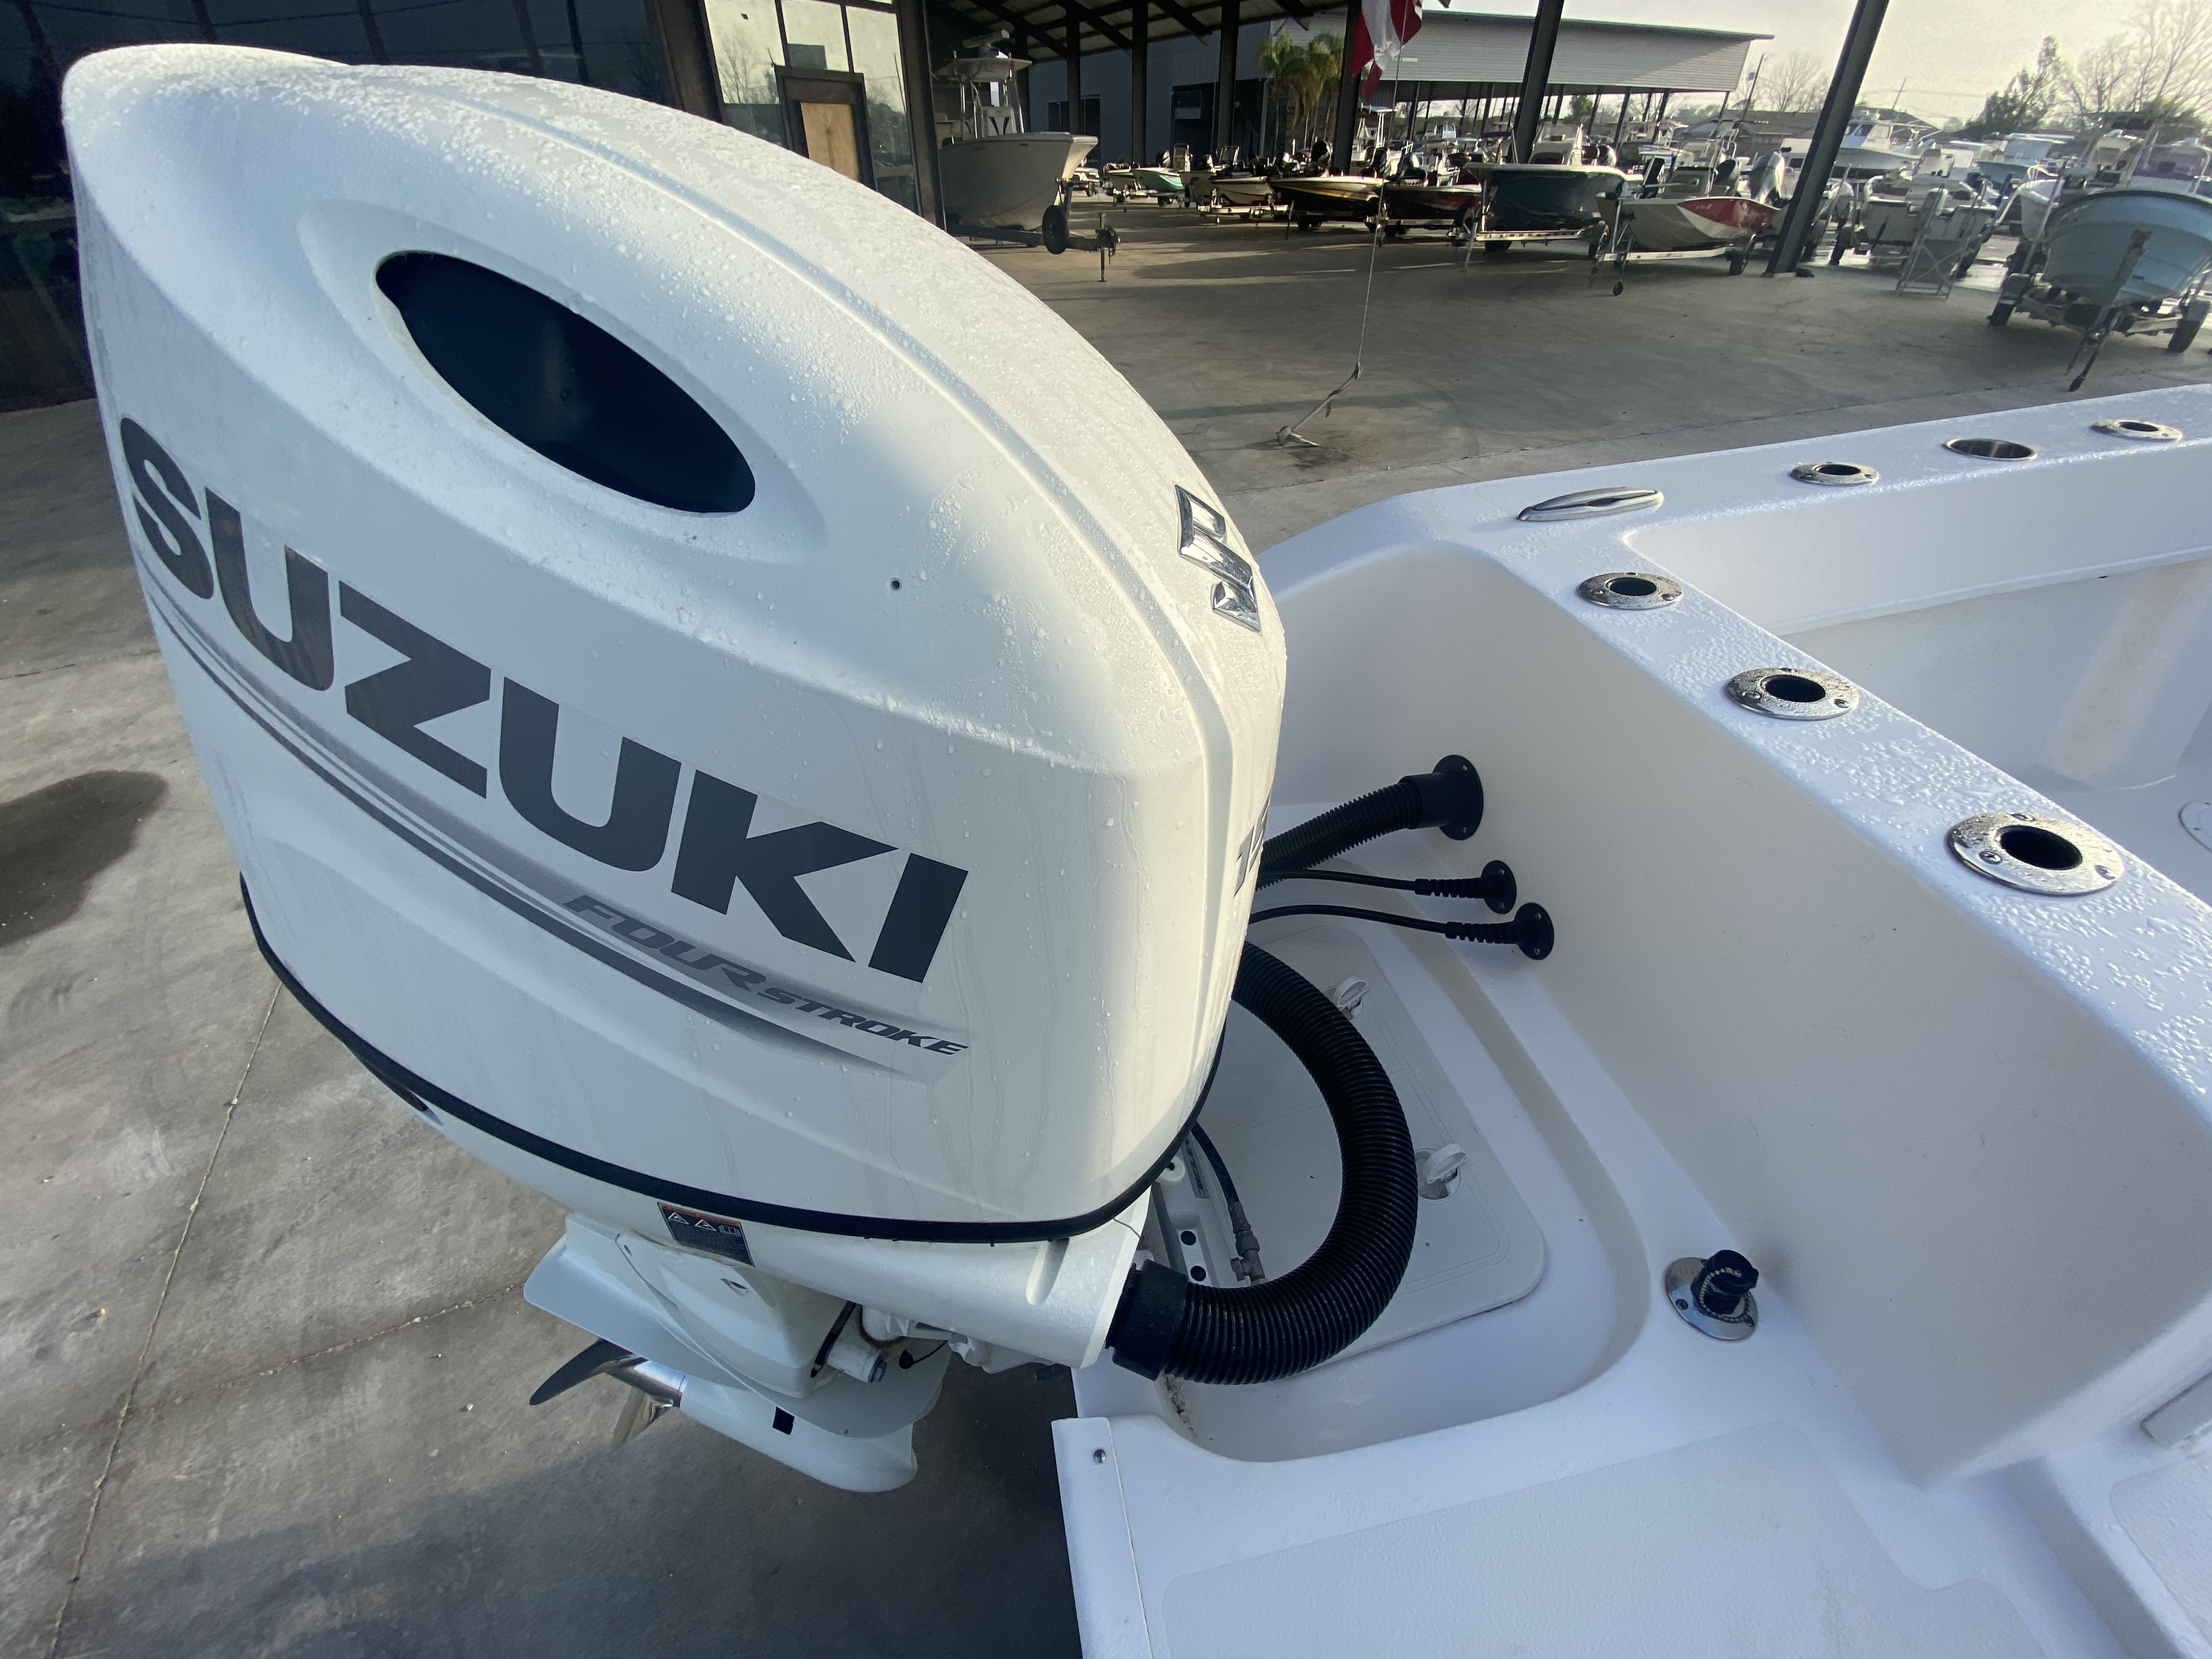 2020 Twin Vee boat for sale, model of the boat is 26 Pro & Image # 23 of 24